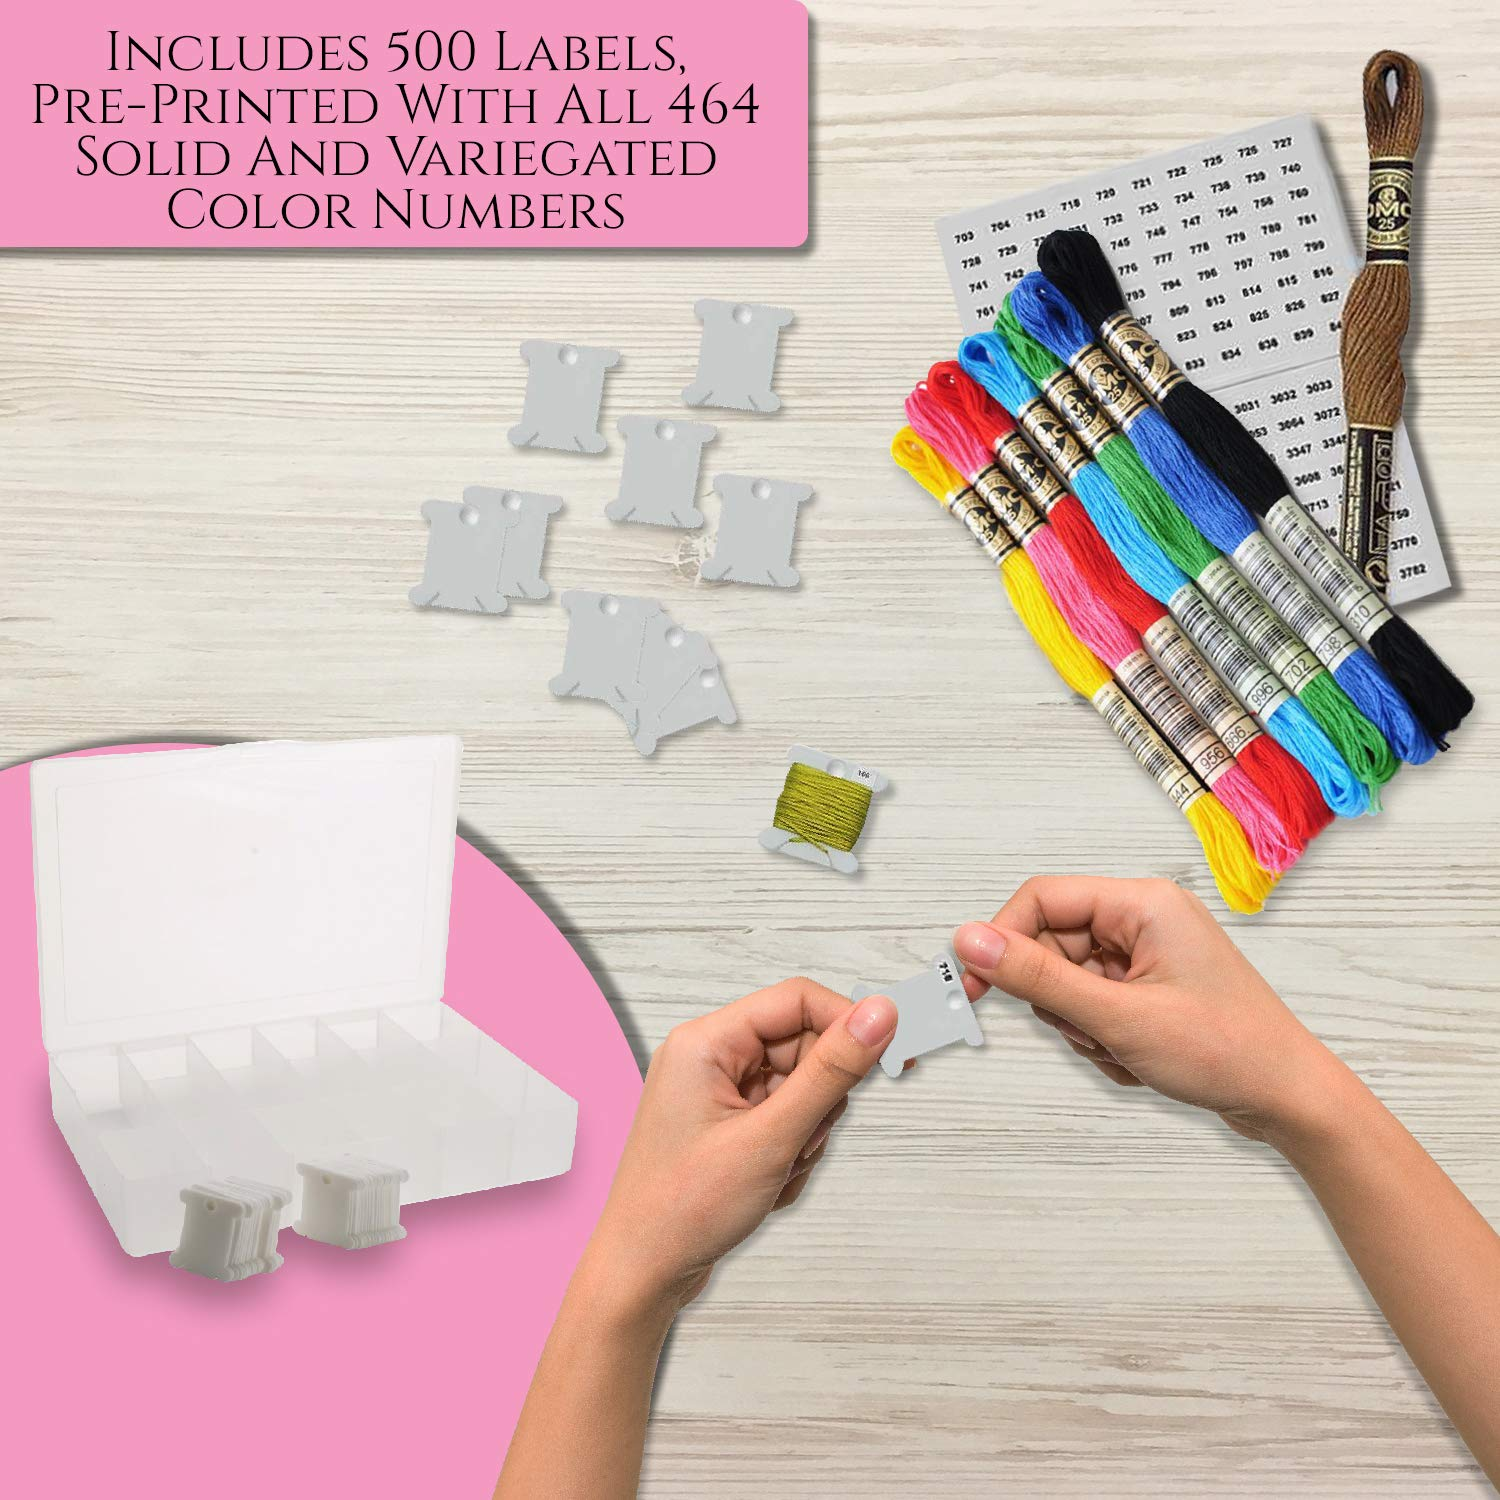 17 Compartments with 100 Hard Plastic Floss Bobbins and 640 Floss Number Stickers. Embroidery Floss Organizer Box Full Set